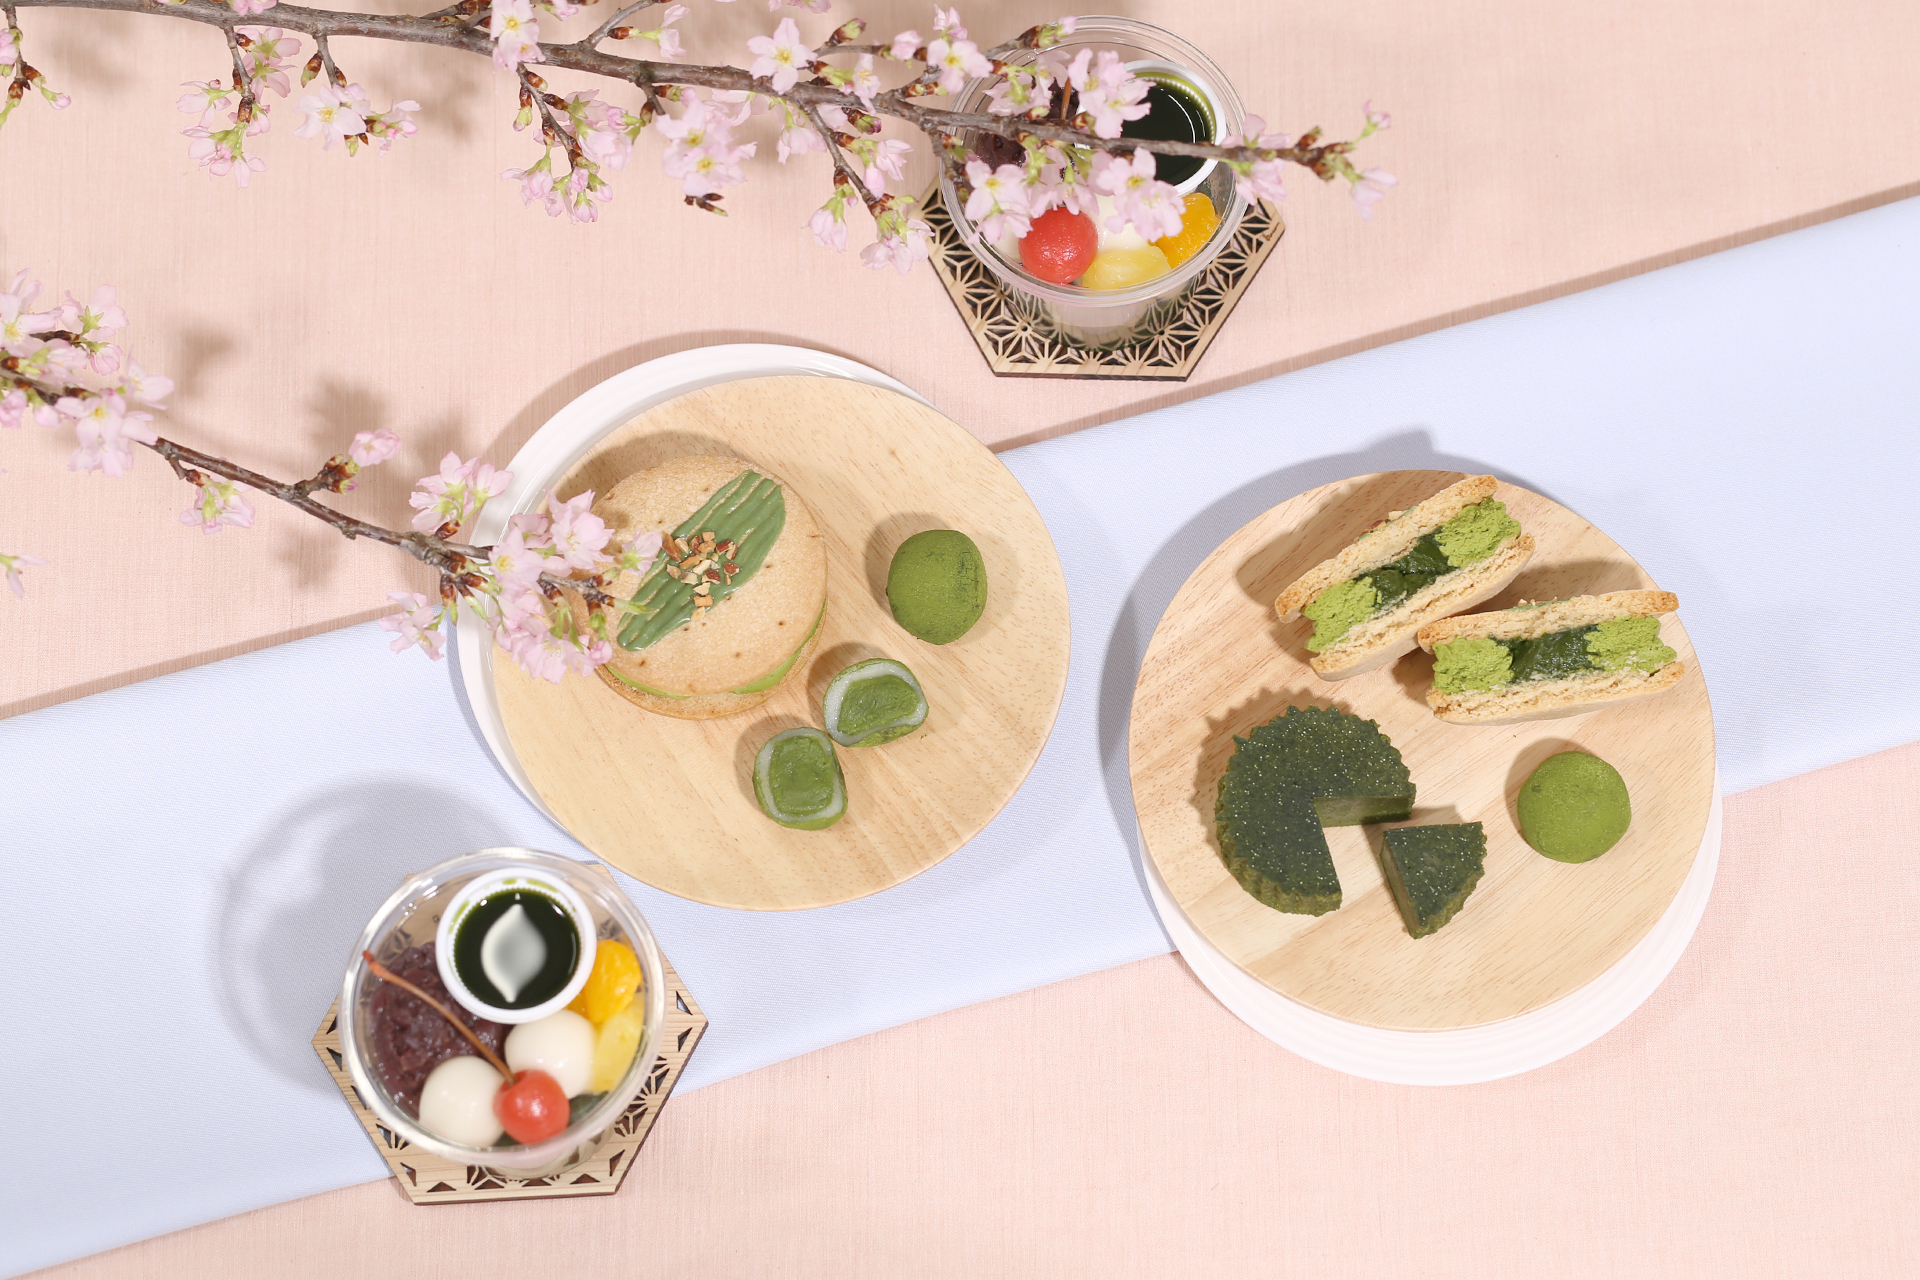 Best Matcha Desserts in Japan 2021